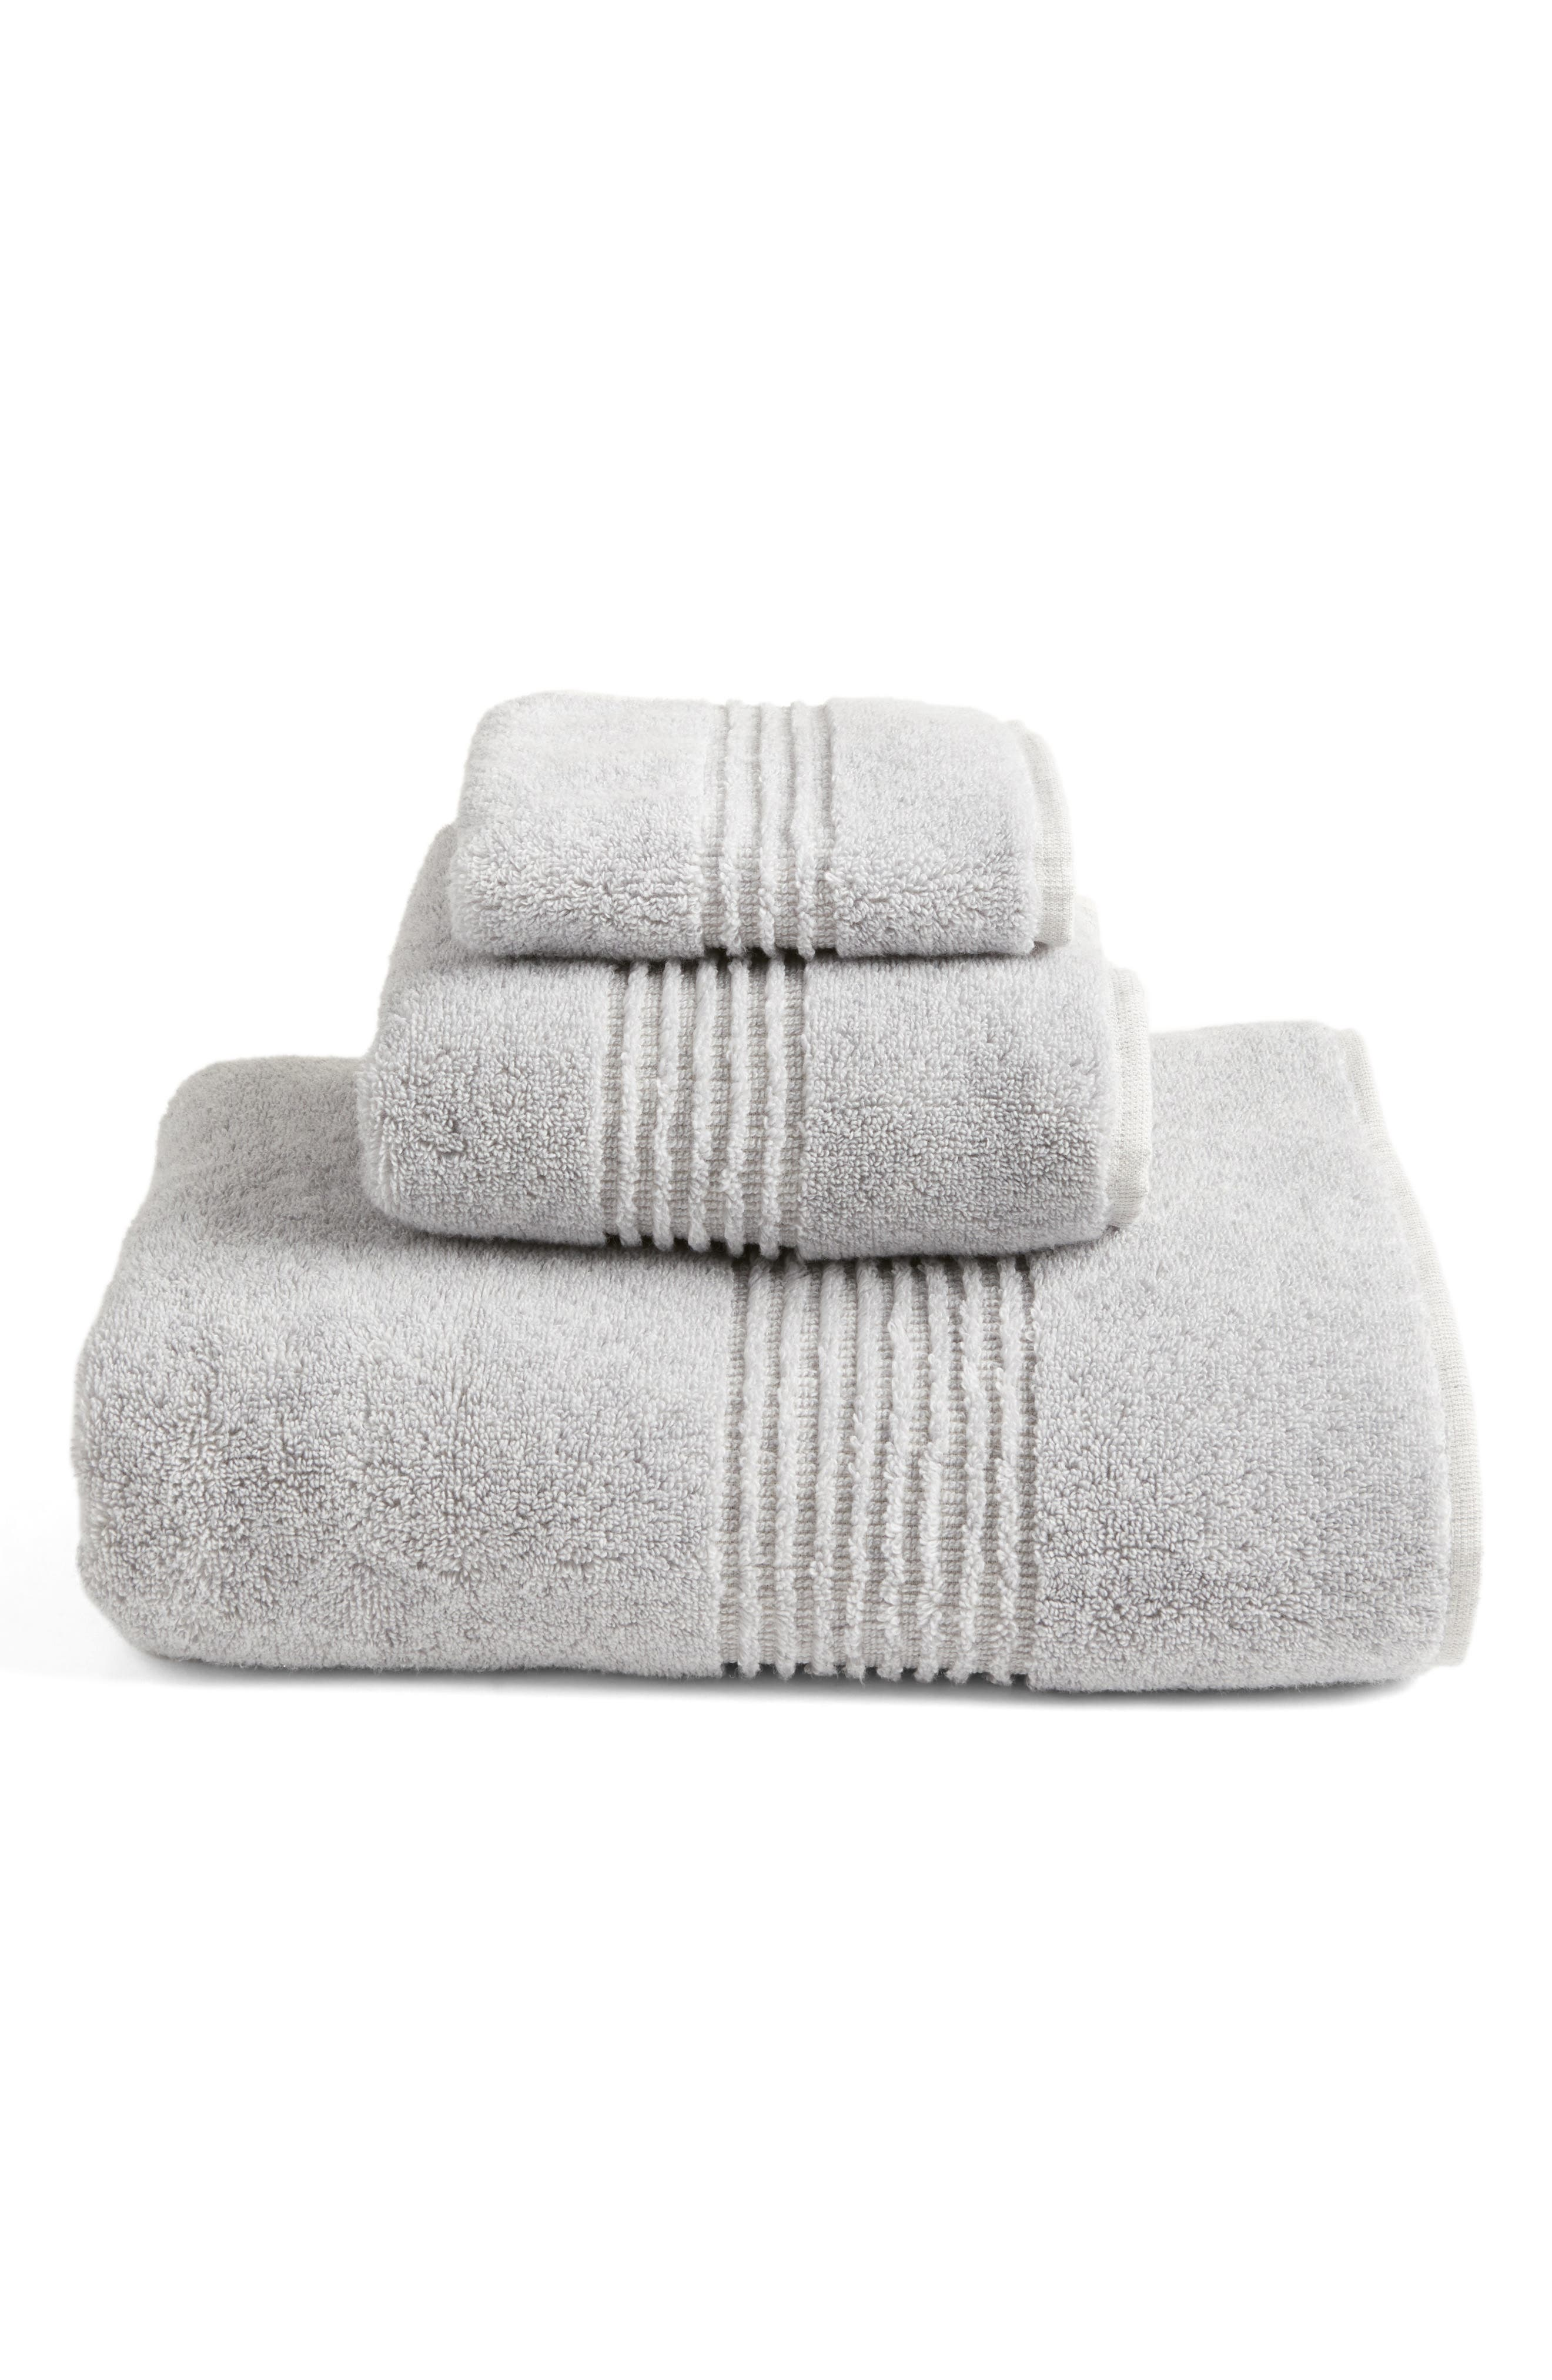 Nordstrom at Home Organic Hydrocotton Heathered Towel Collection